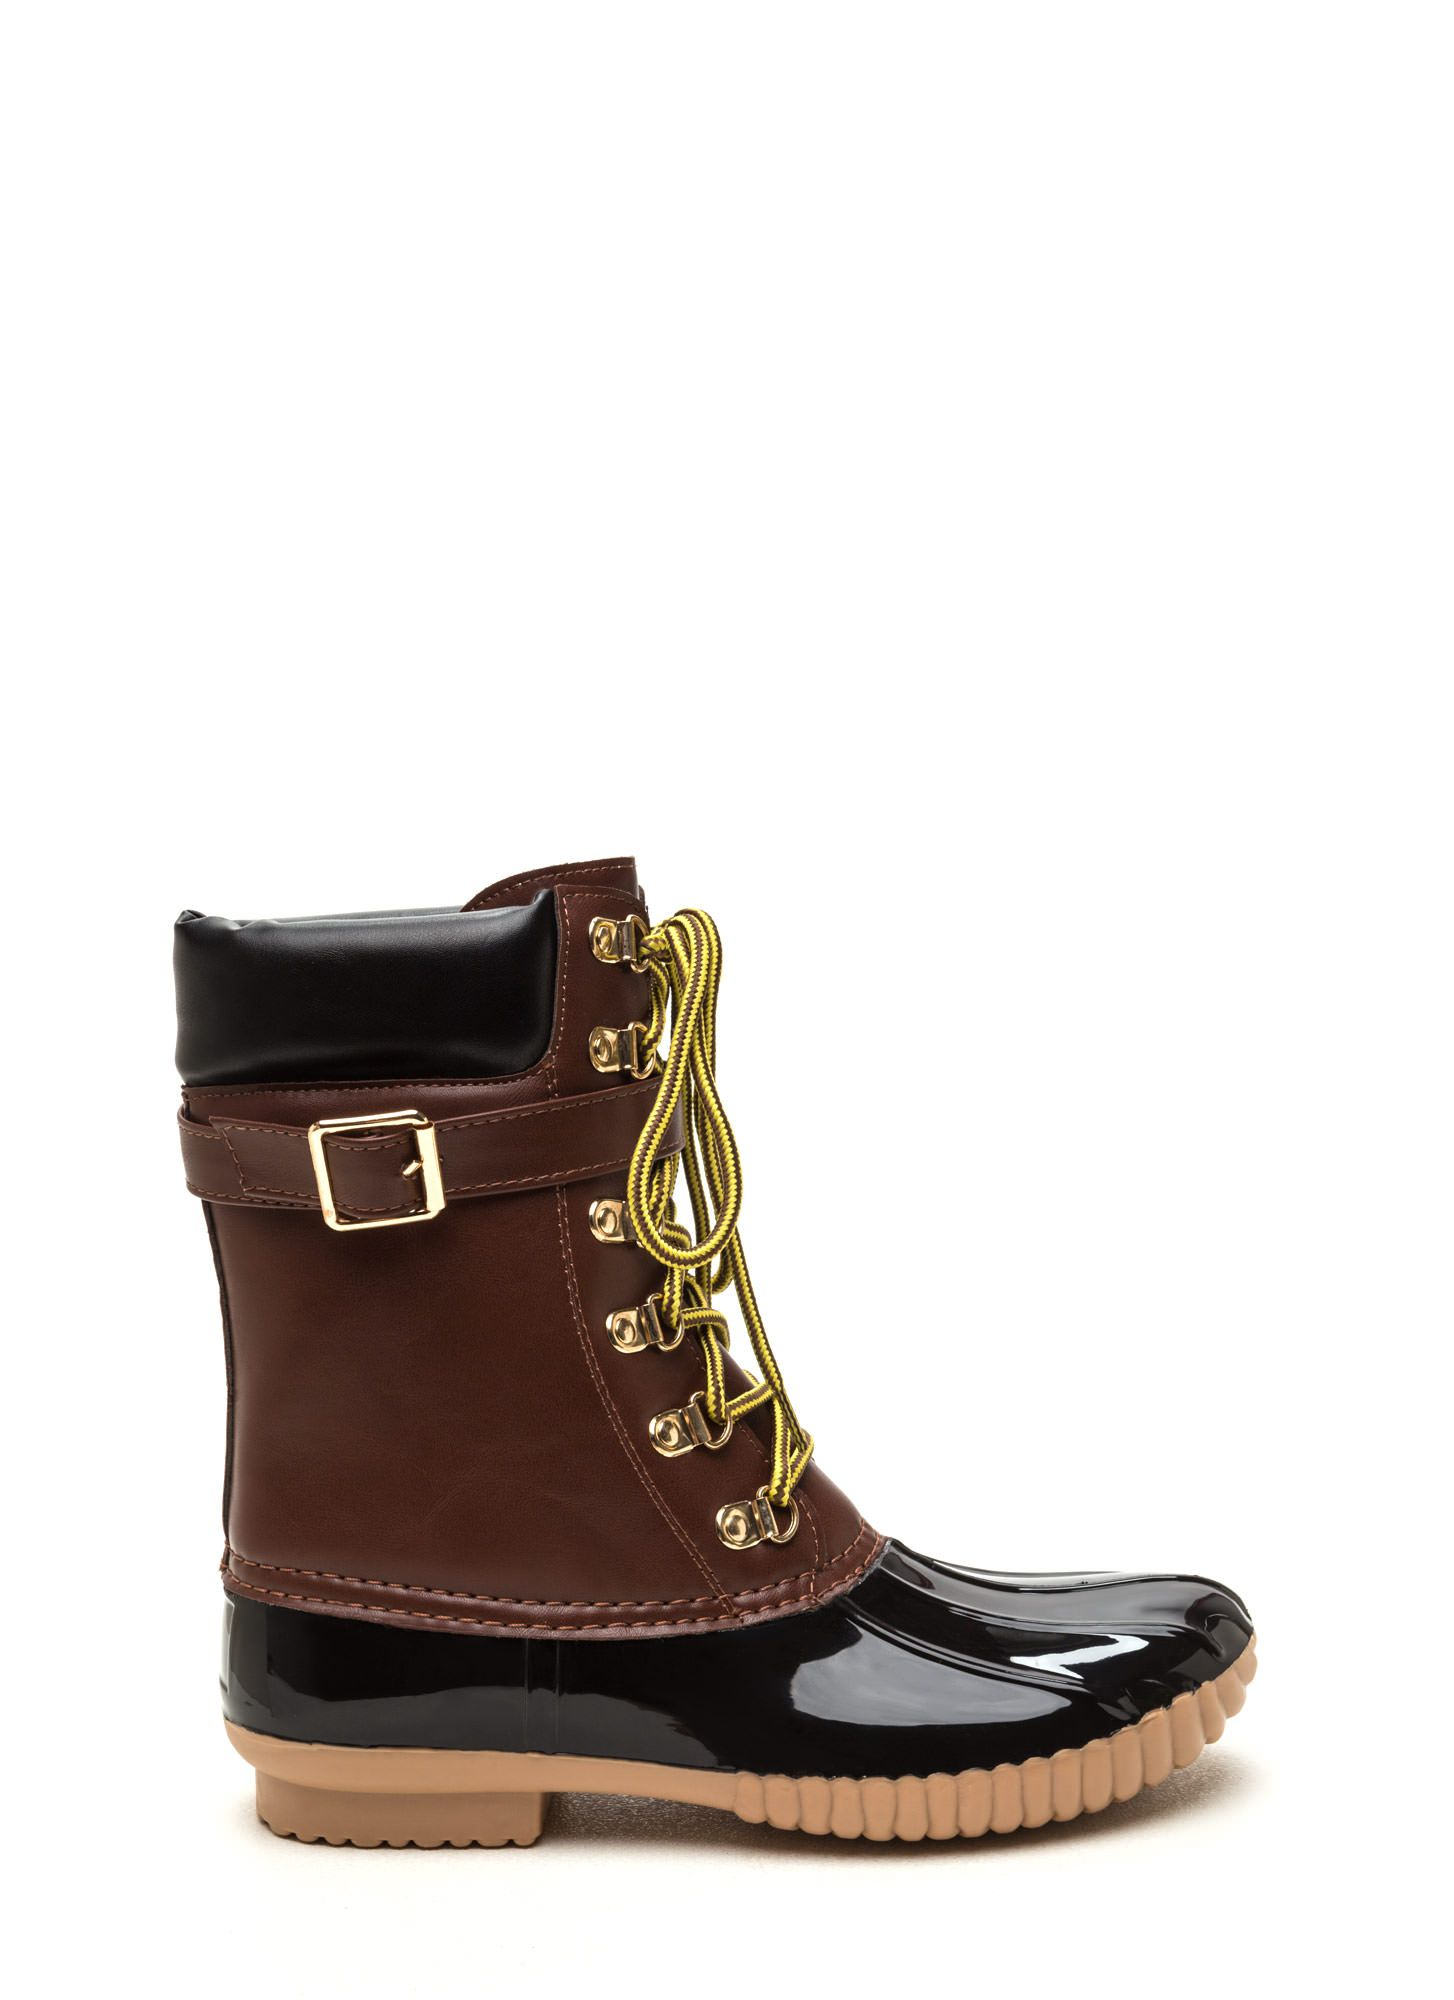 Tread Climber Faux Leather Duck Boots BLACK RED - GoJane.com